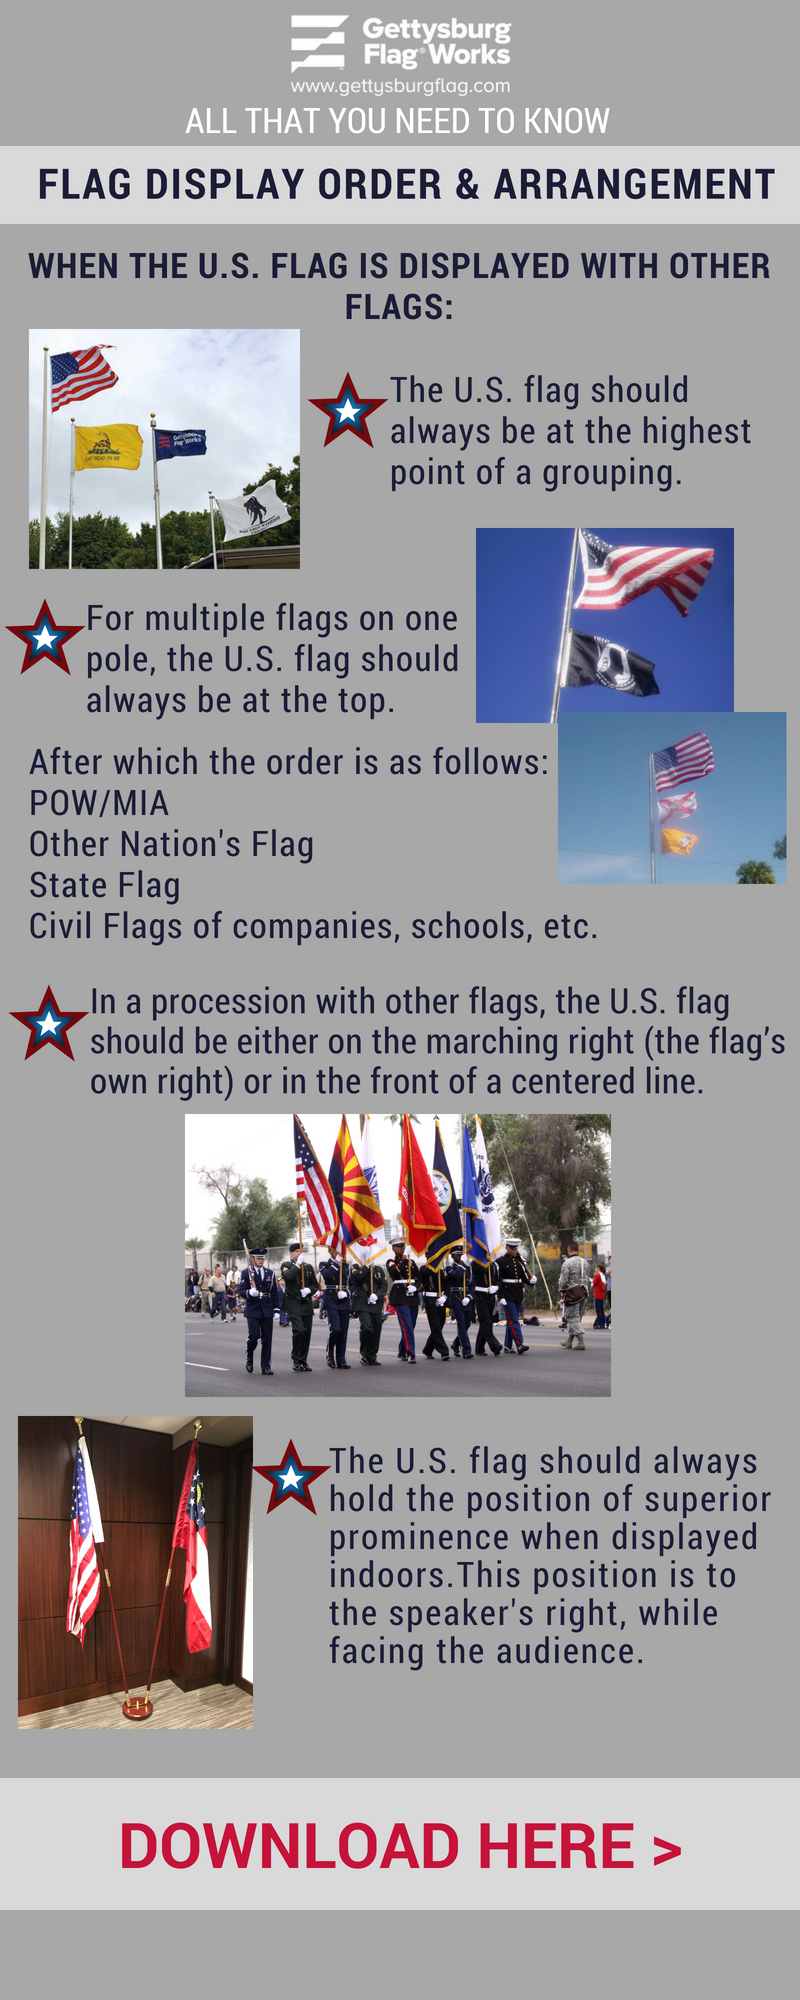 Flag Display Order Infographic